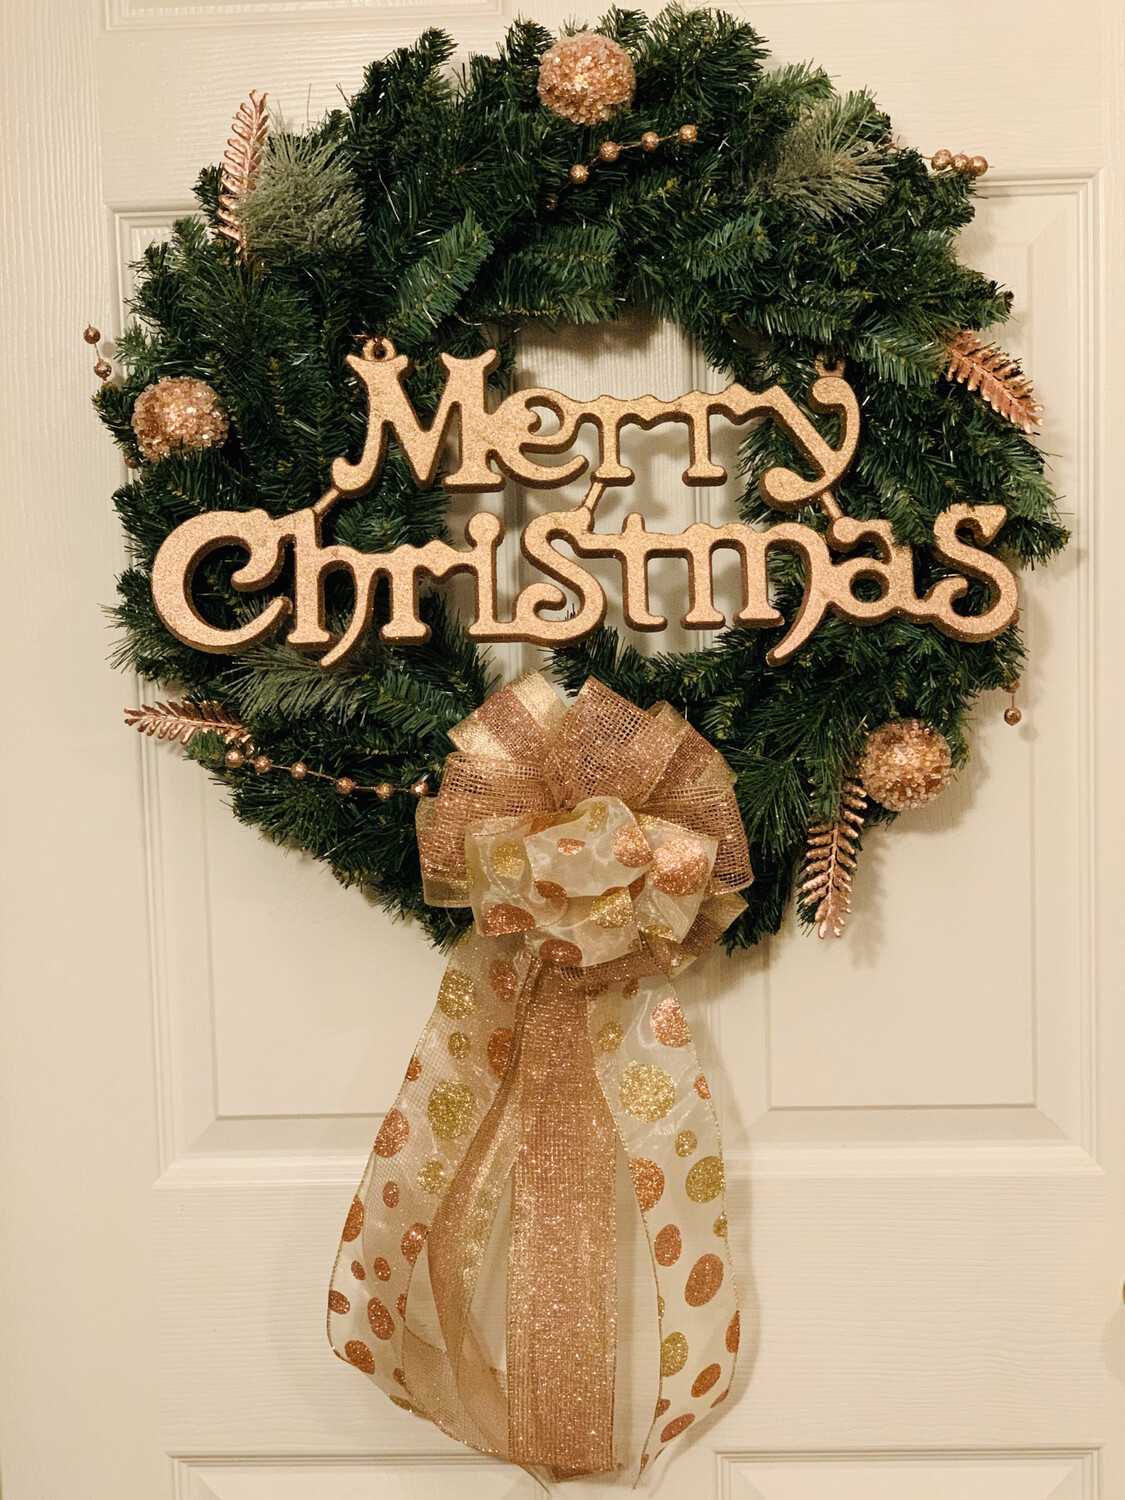 Merry Christmas Rose Gold Evergreen Holiday Ornaments Wreath Christmas Gift A Touch of Faith